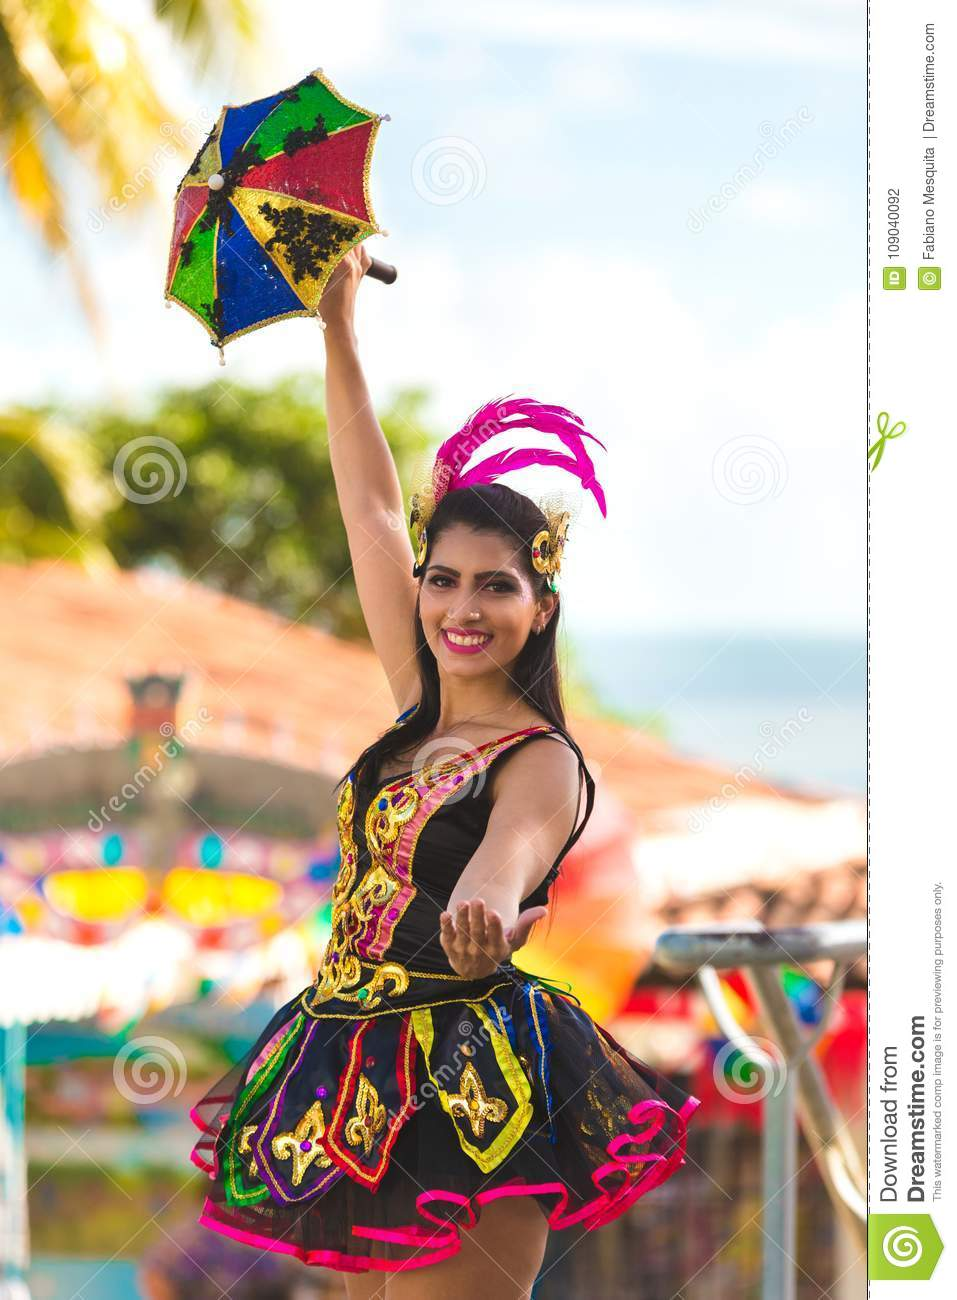 Brazilian Carnival 2018 stock photo  Image of brazil - 109040092